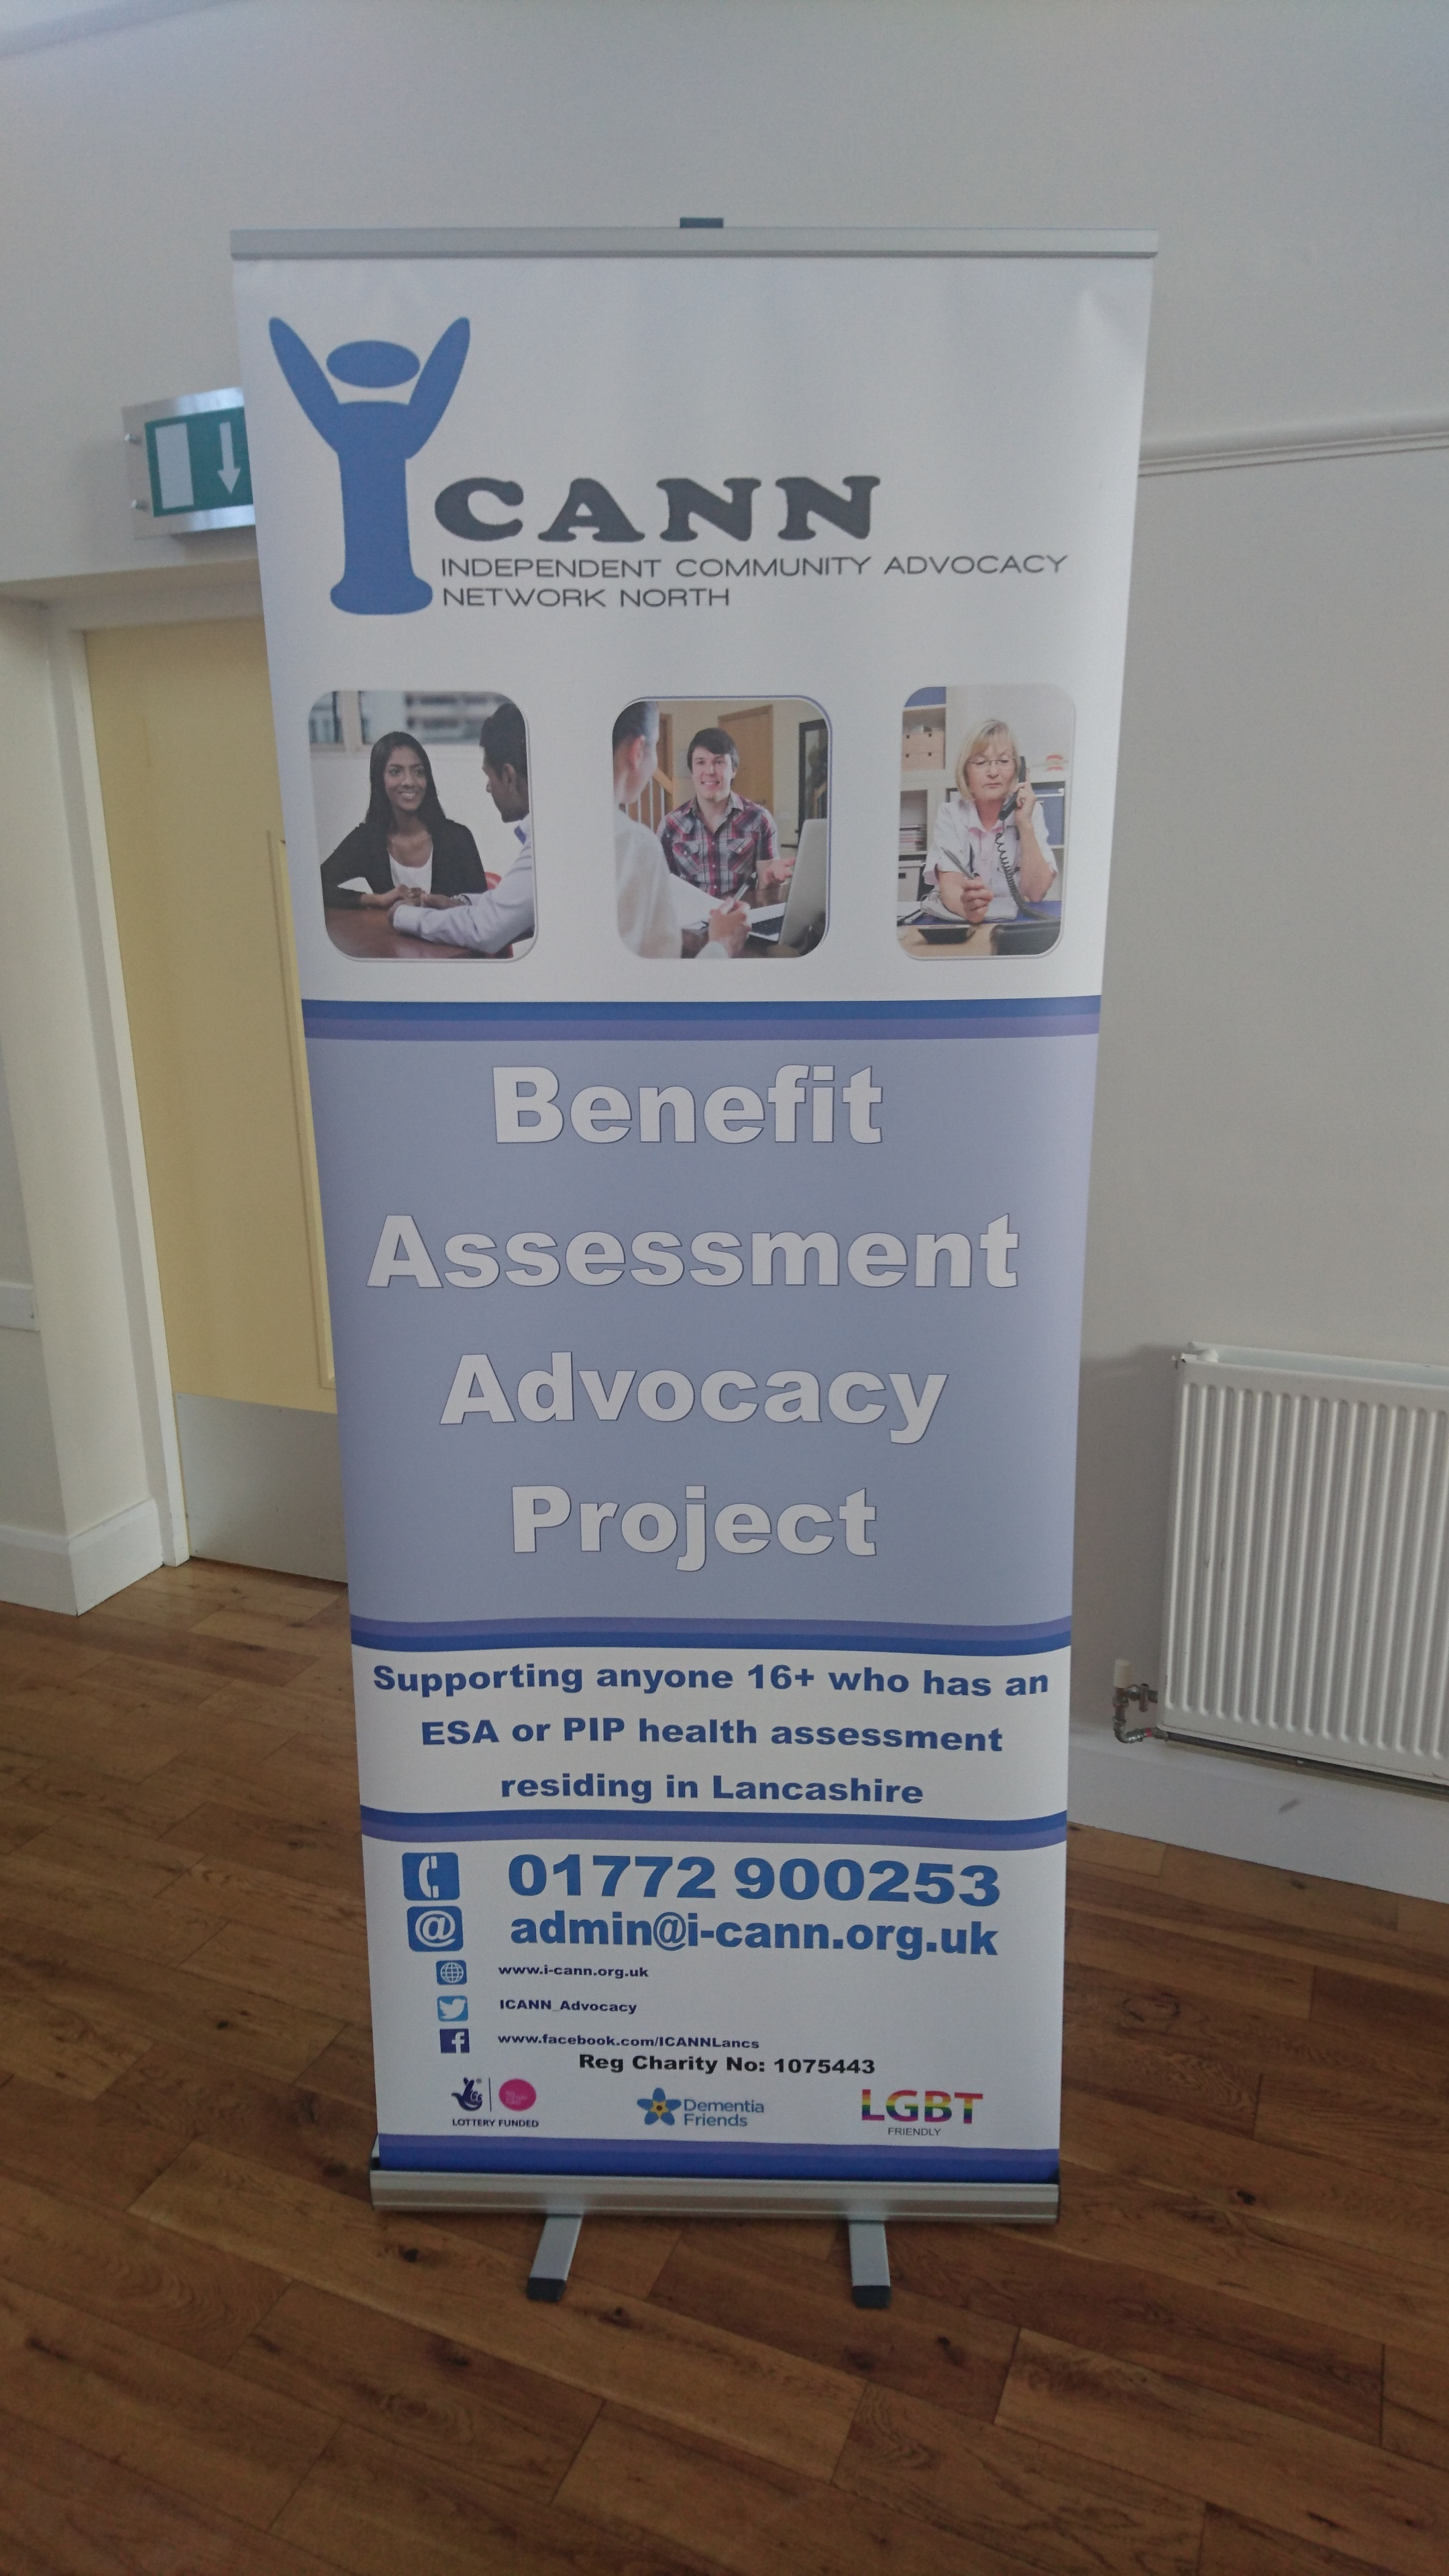 Our Benefit Assessment Advocacy Project has been well received this year.